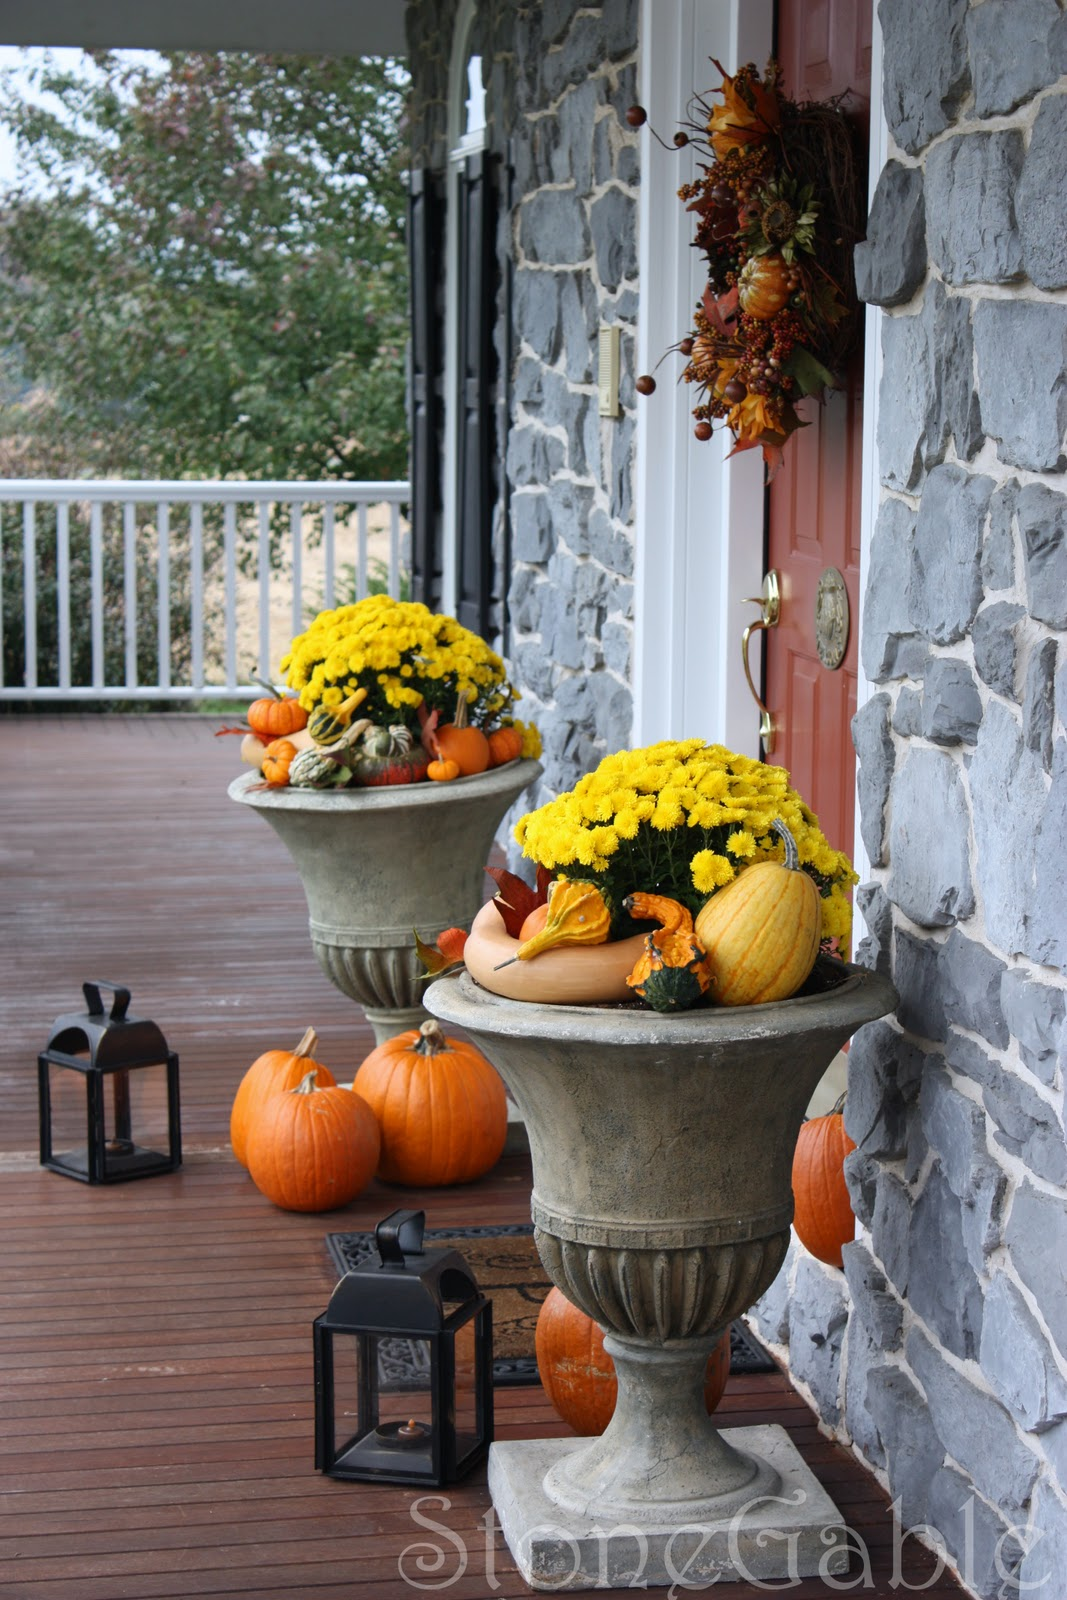 Outdoor fall decor stonegable - Pumpkin decorating ideas autumnal decor ...